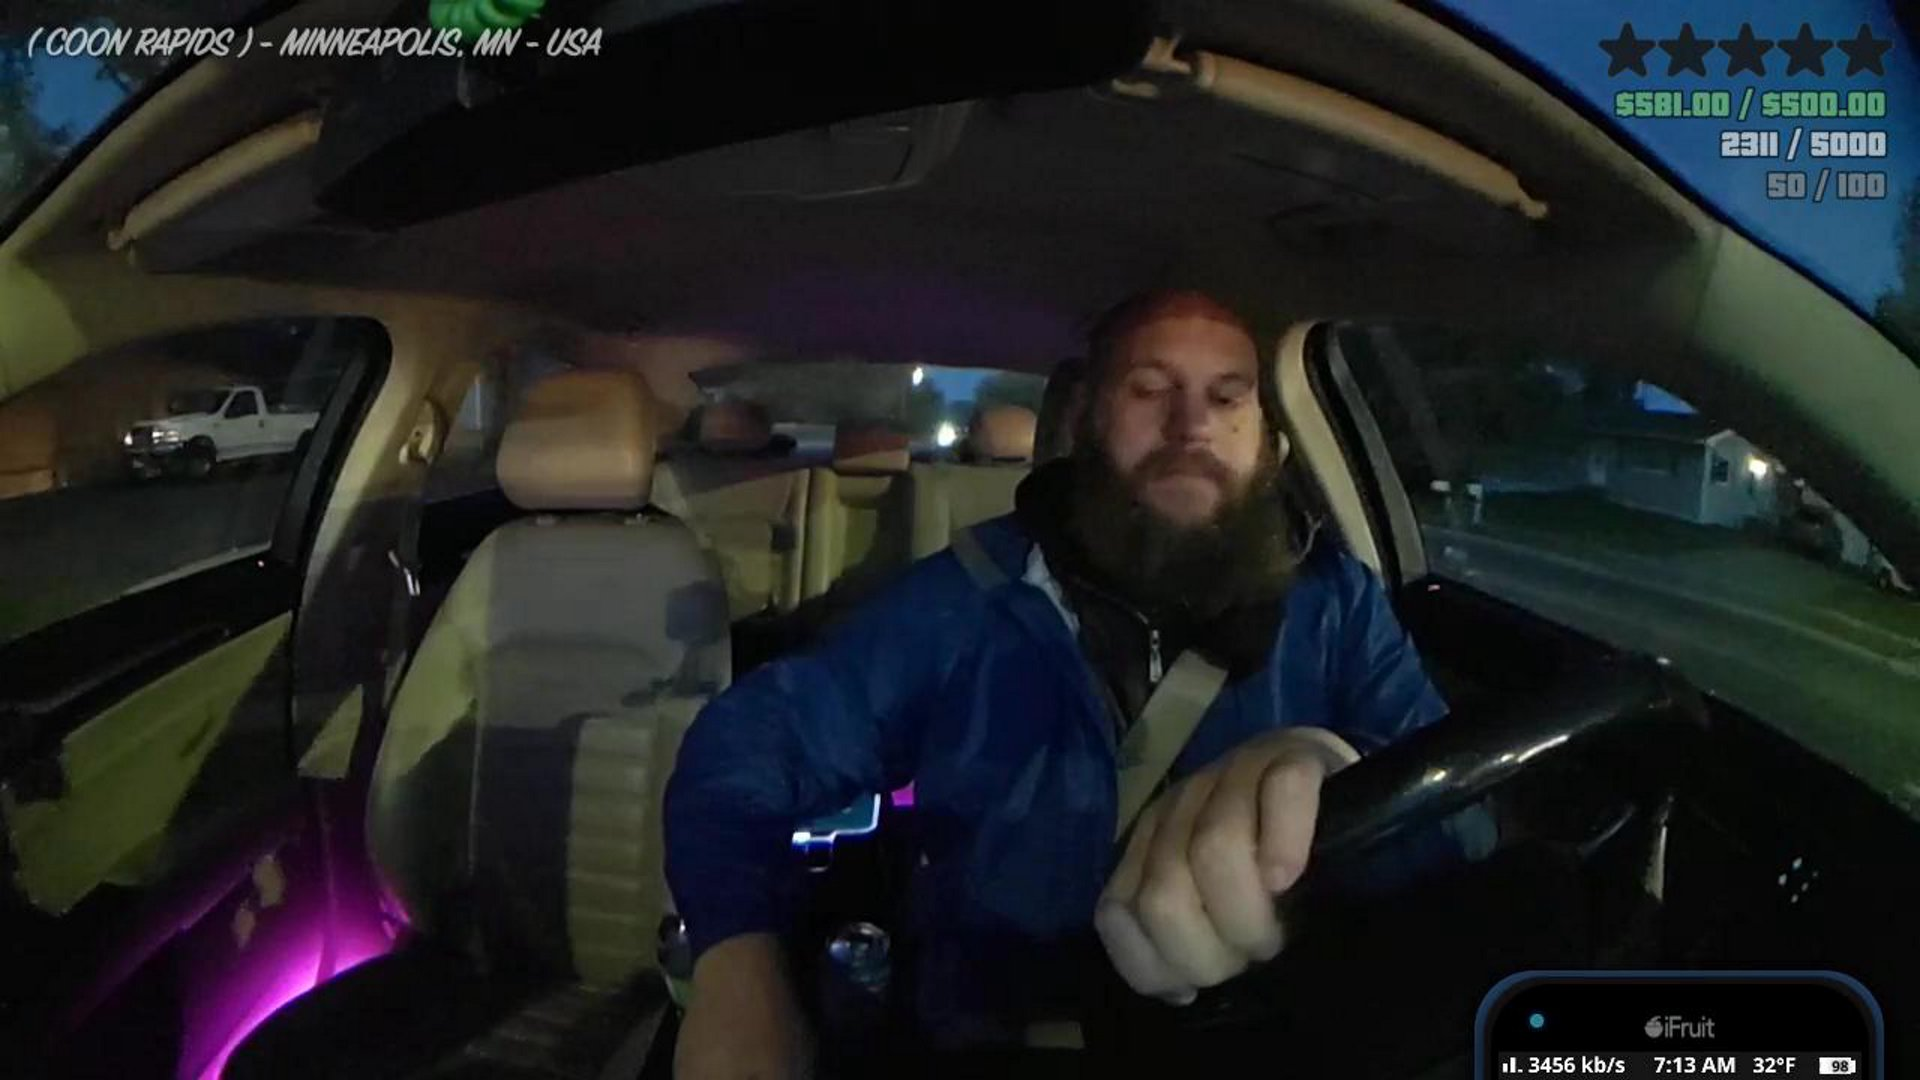 late-night-uber-only-test-discord-bttv-sub-donate-luv-just-chatting-0601-https-t-co-vegz77twtu-https-t-co-c3xioabcqk